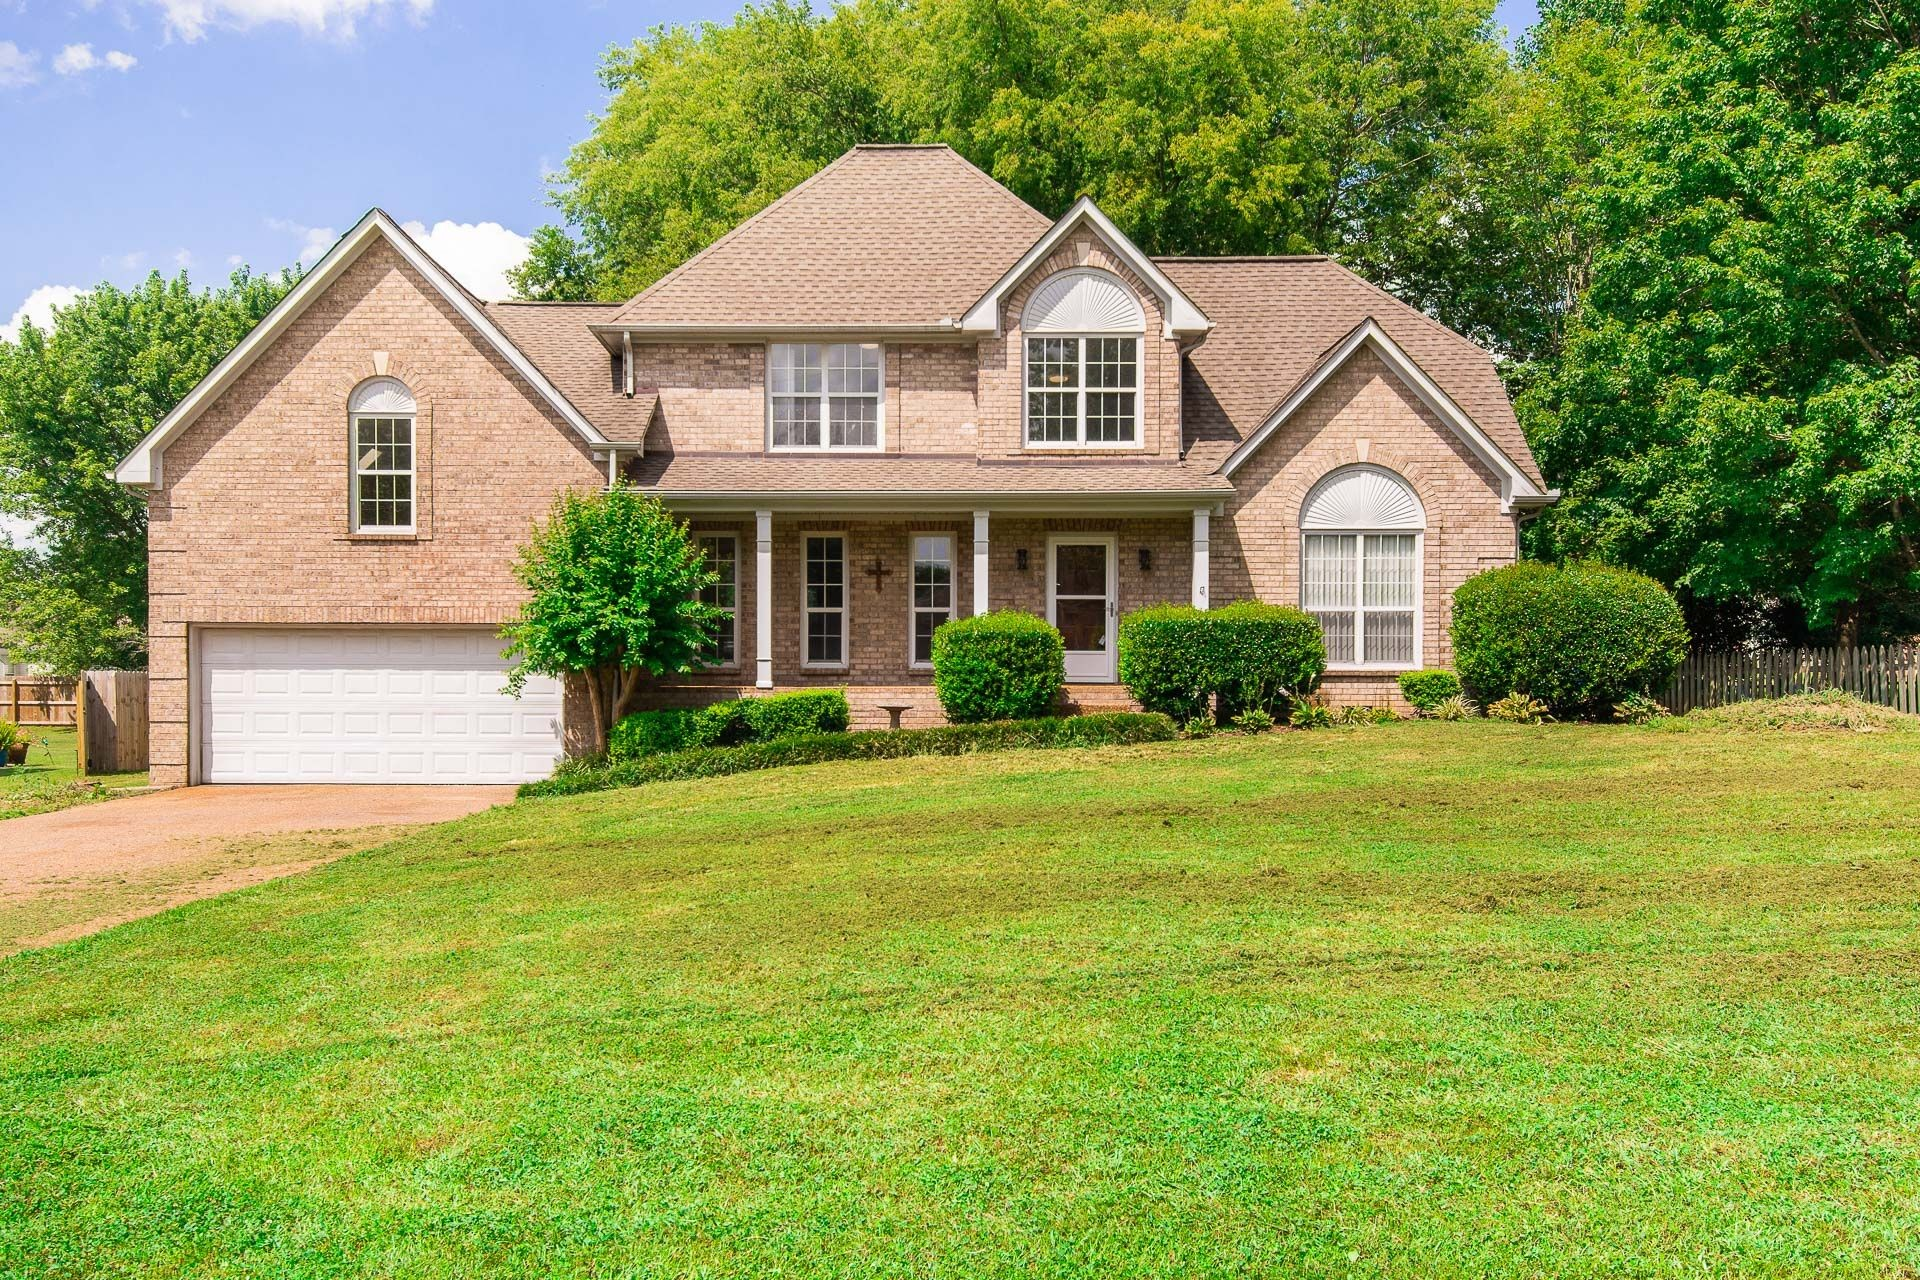 2698 Douglas Ln Property Photo - Thompsons Station, TN real estate listing